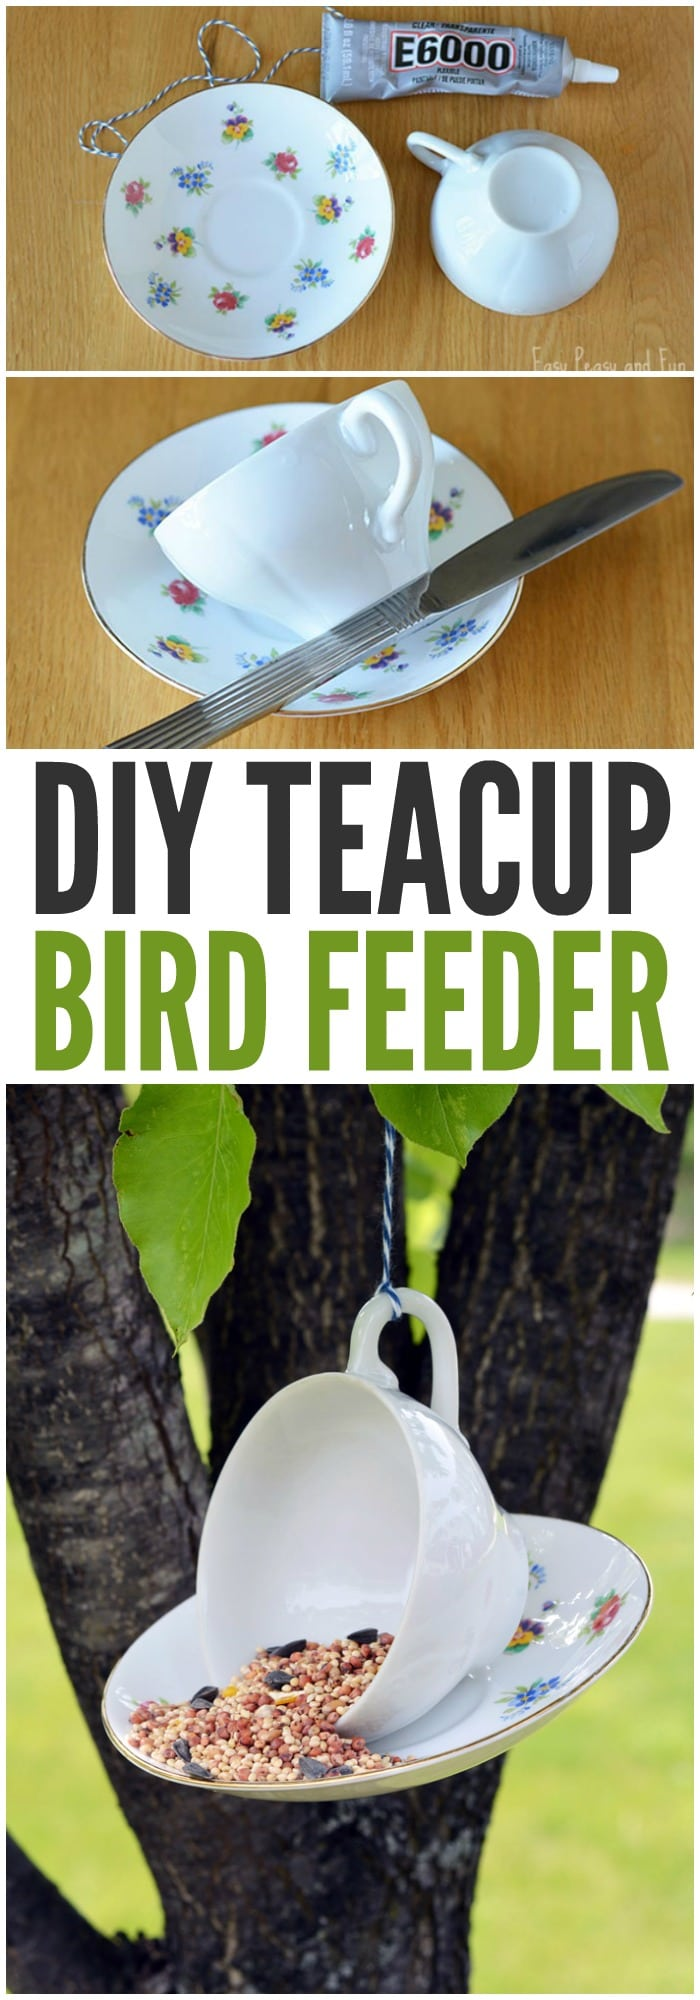 DIY Teacup Bird Feeder Easy Peasy And Fun